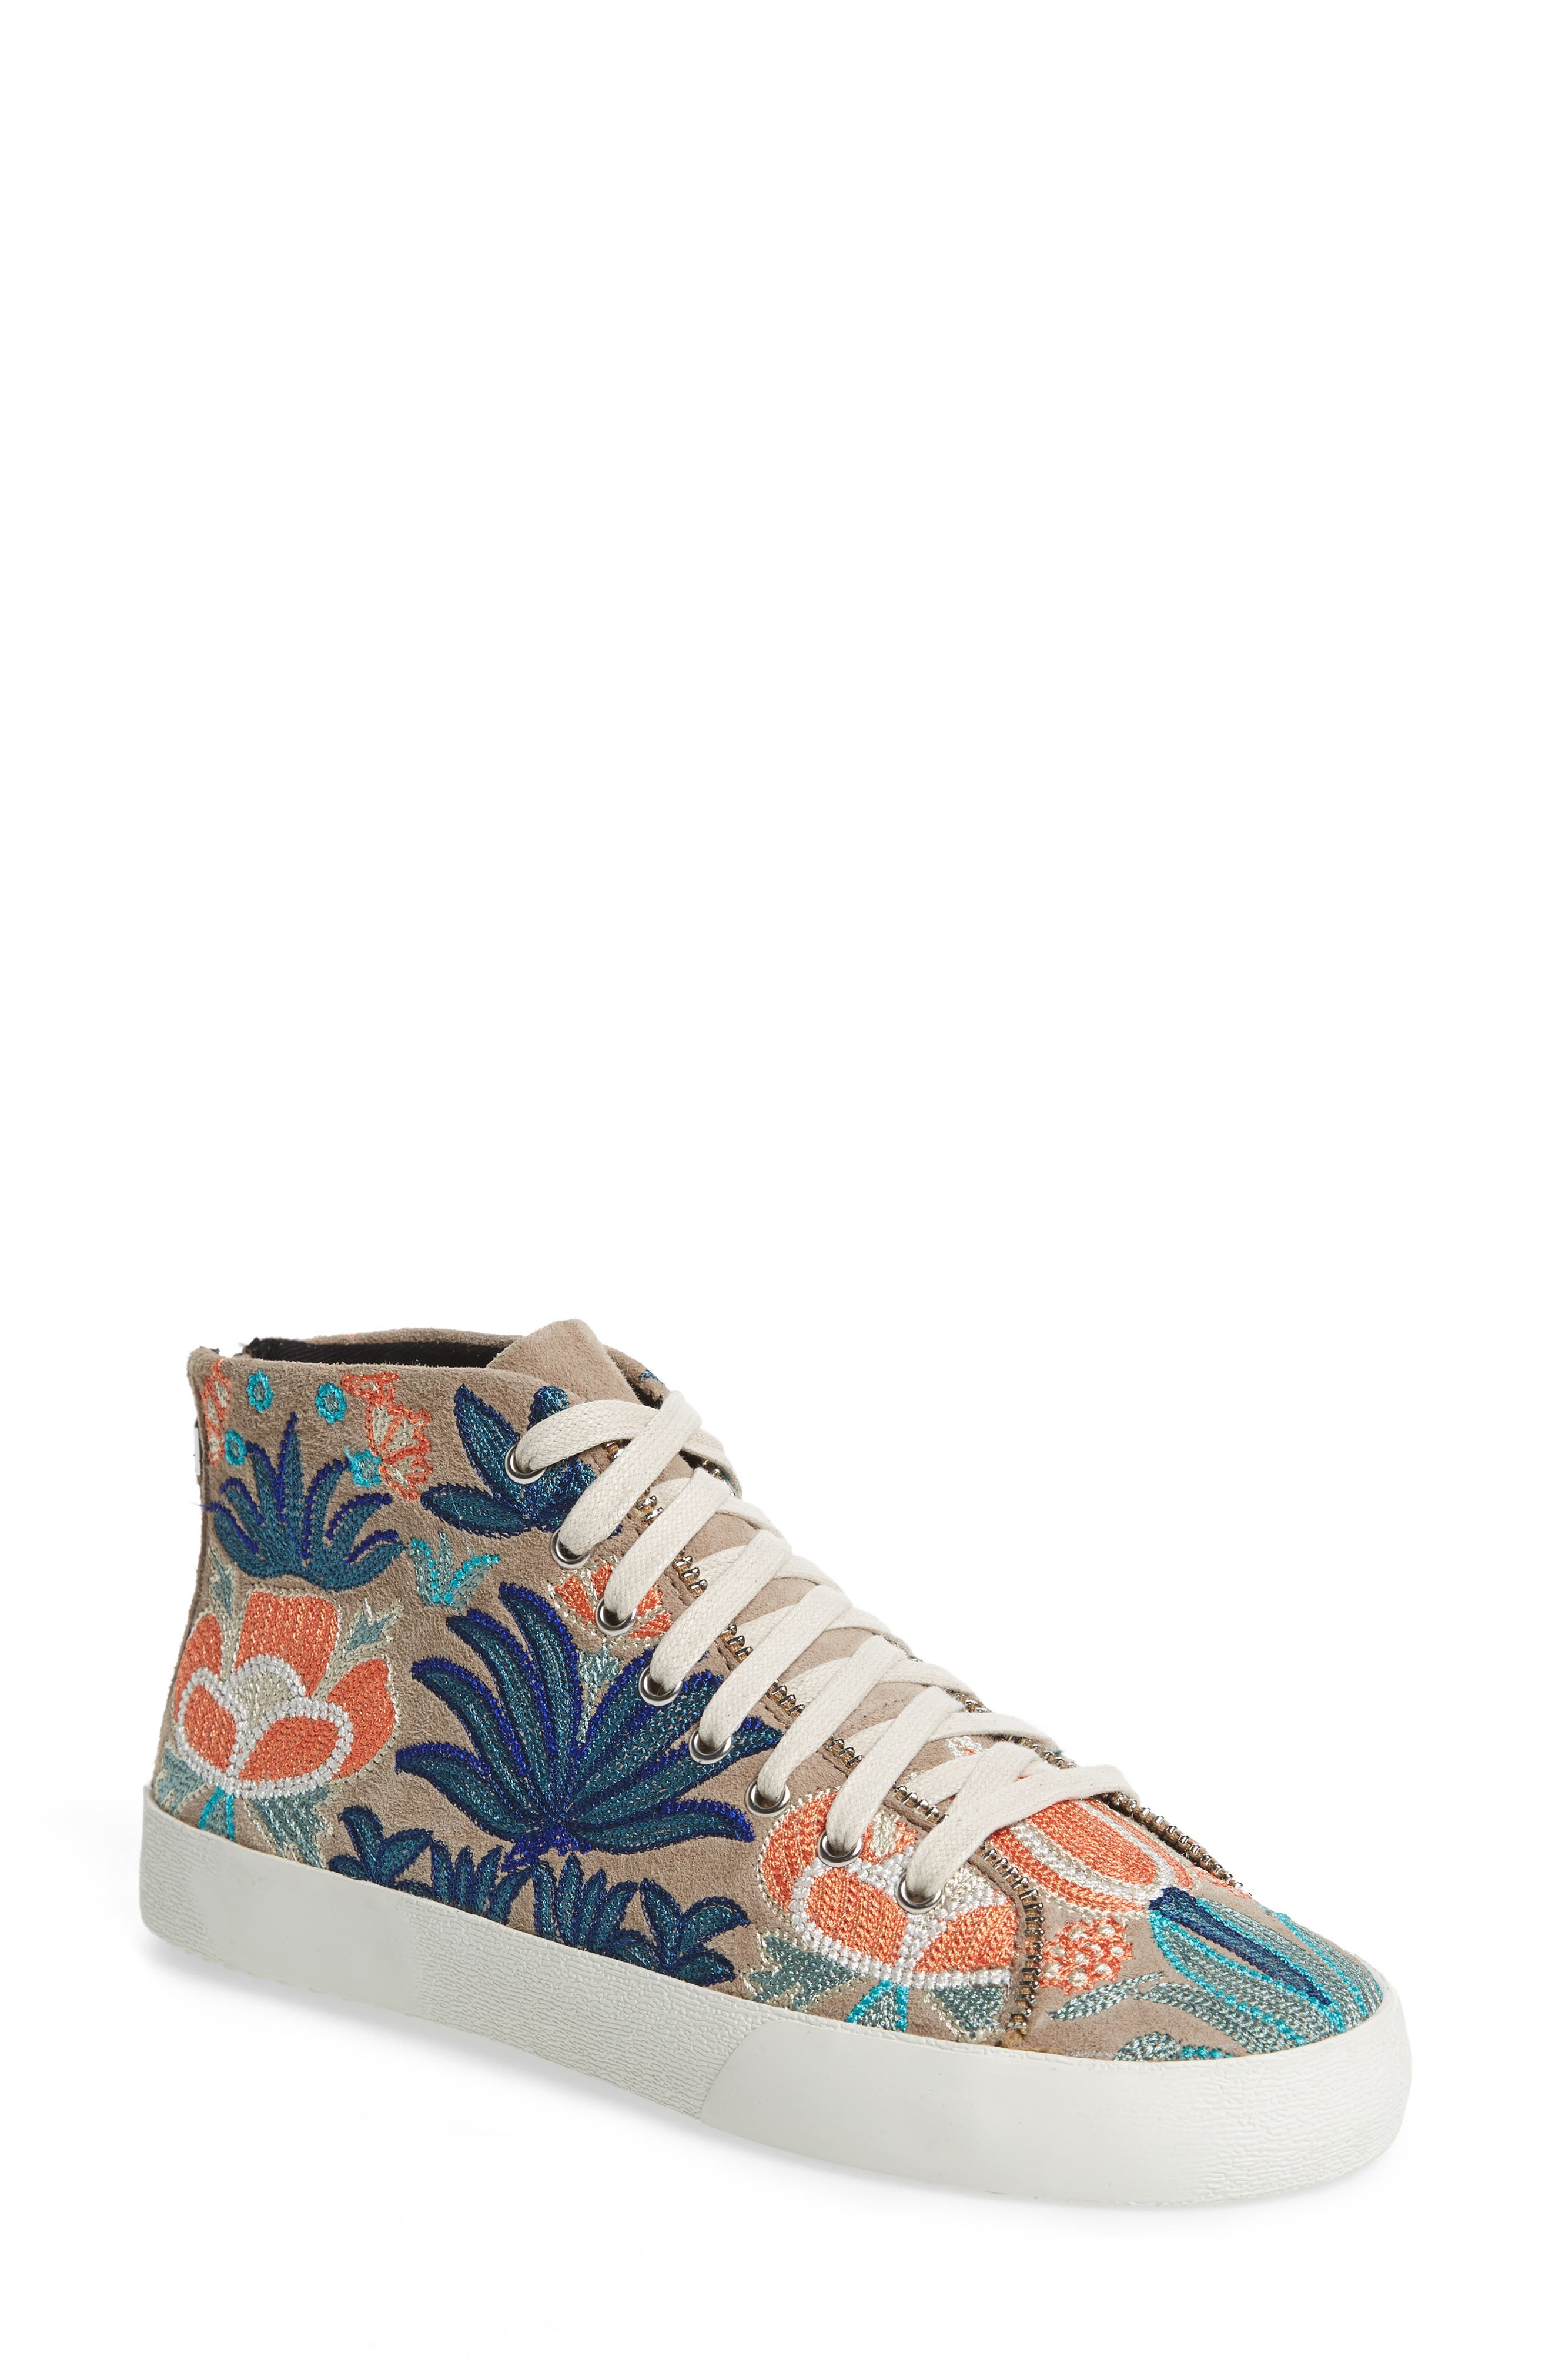 Zaina Embroidered Sneaker,                             Main thumbnail 1, color,                             Sand